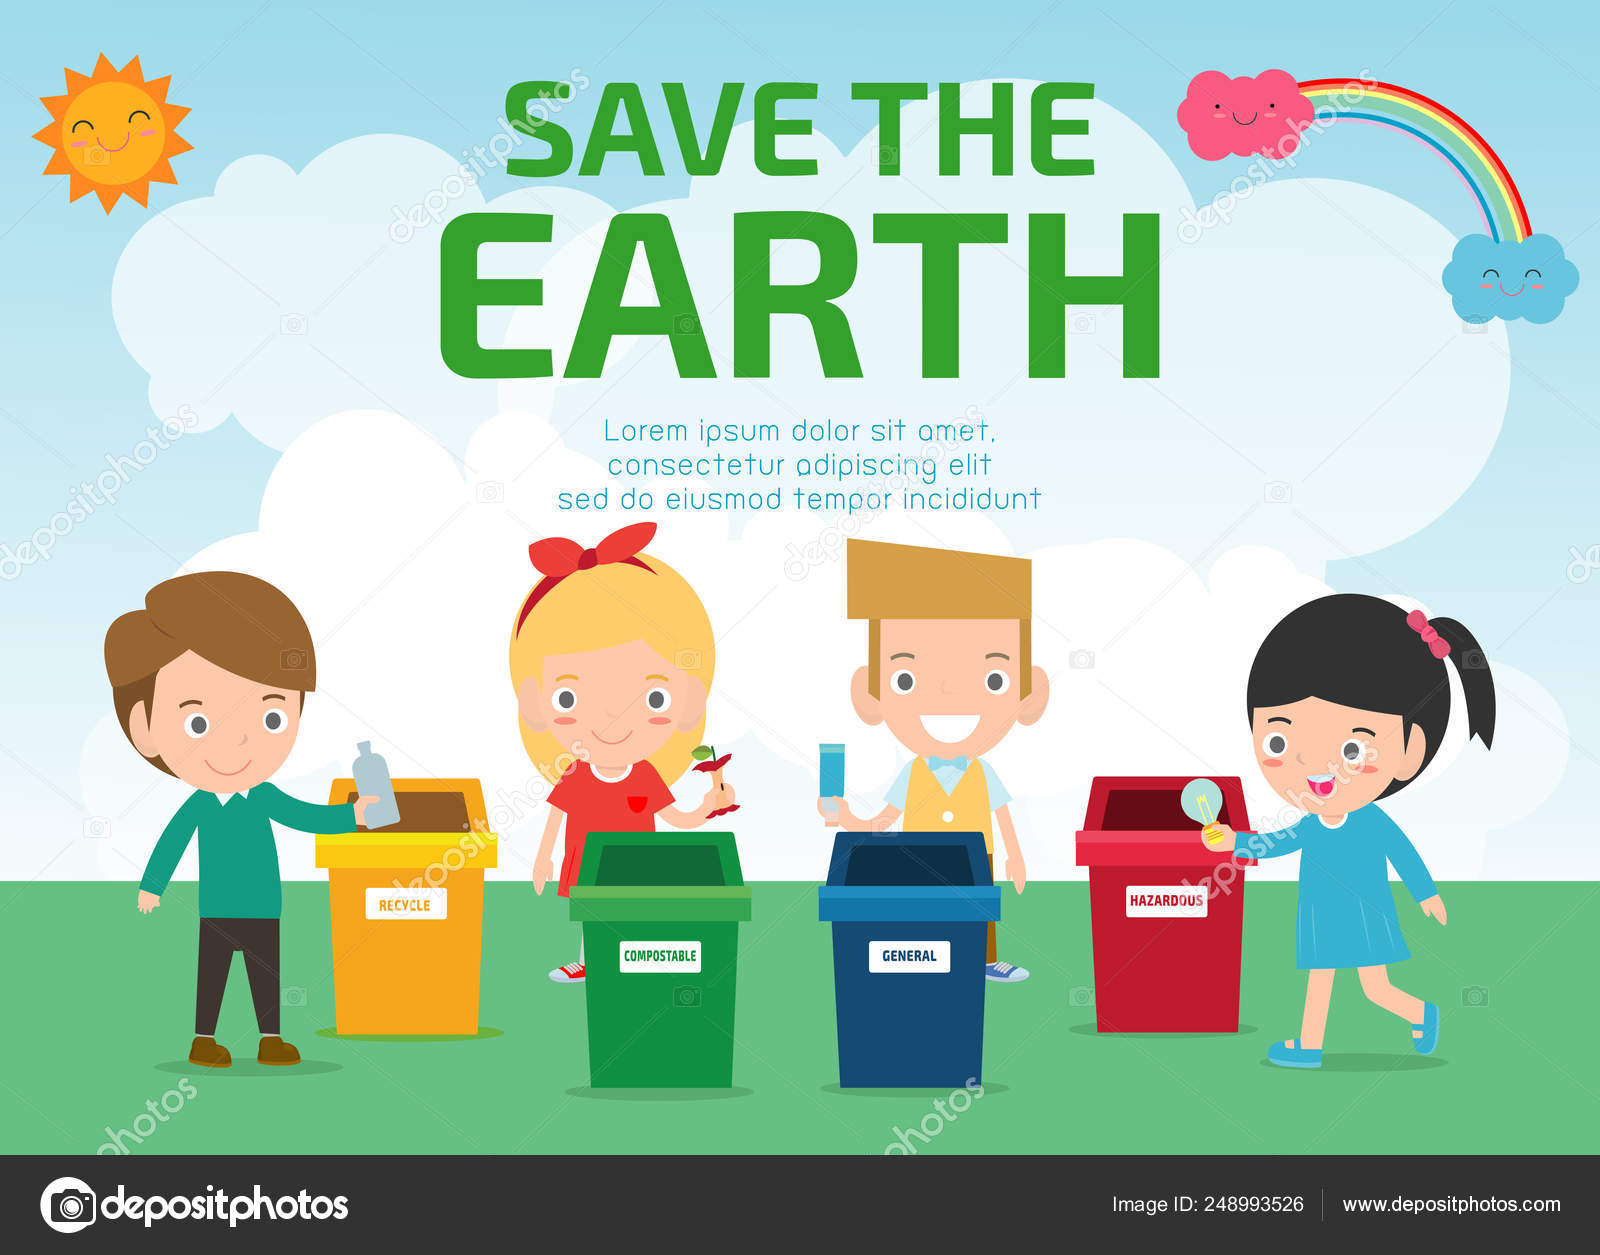 Images Save Earth Cartoon Kids Saving Earth World Planet Ecology Concept Cute Kid Cartoon Stock Vector C Phanuchat10700 Gmail Com 248993526